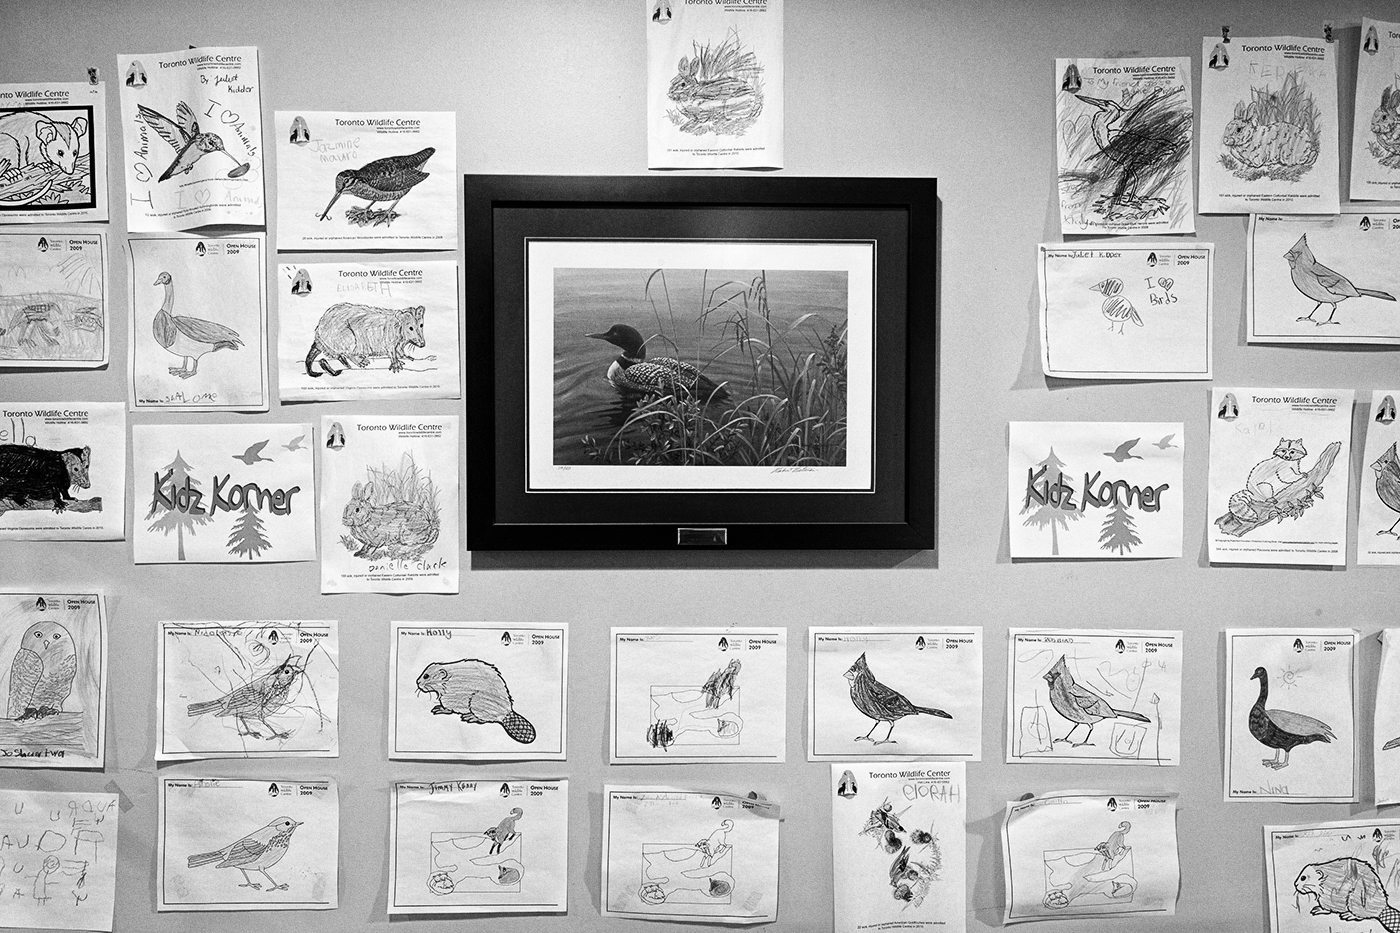 Children's drawings of birds on a wall at the Toronto Wildlife Centre